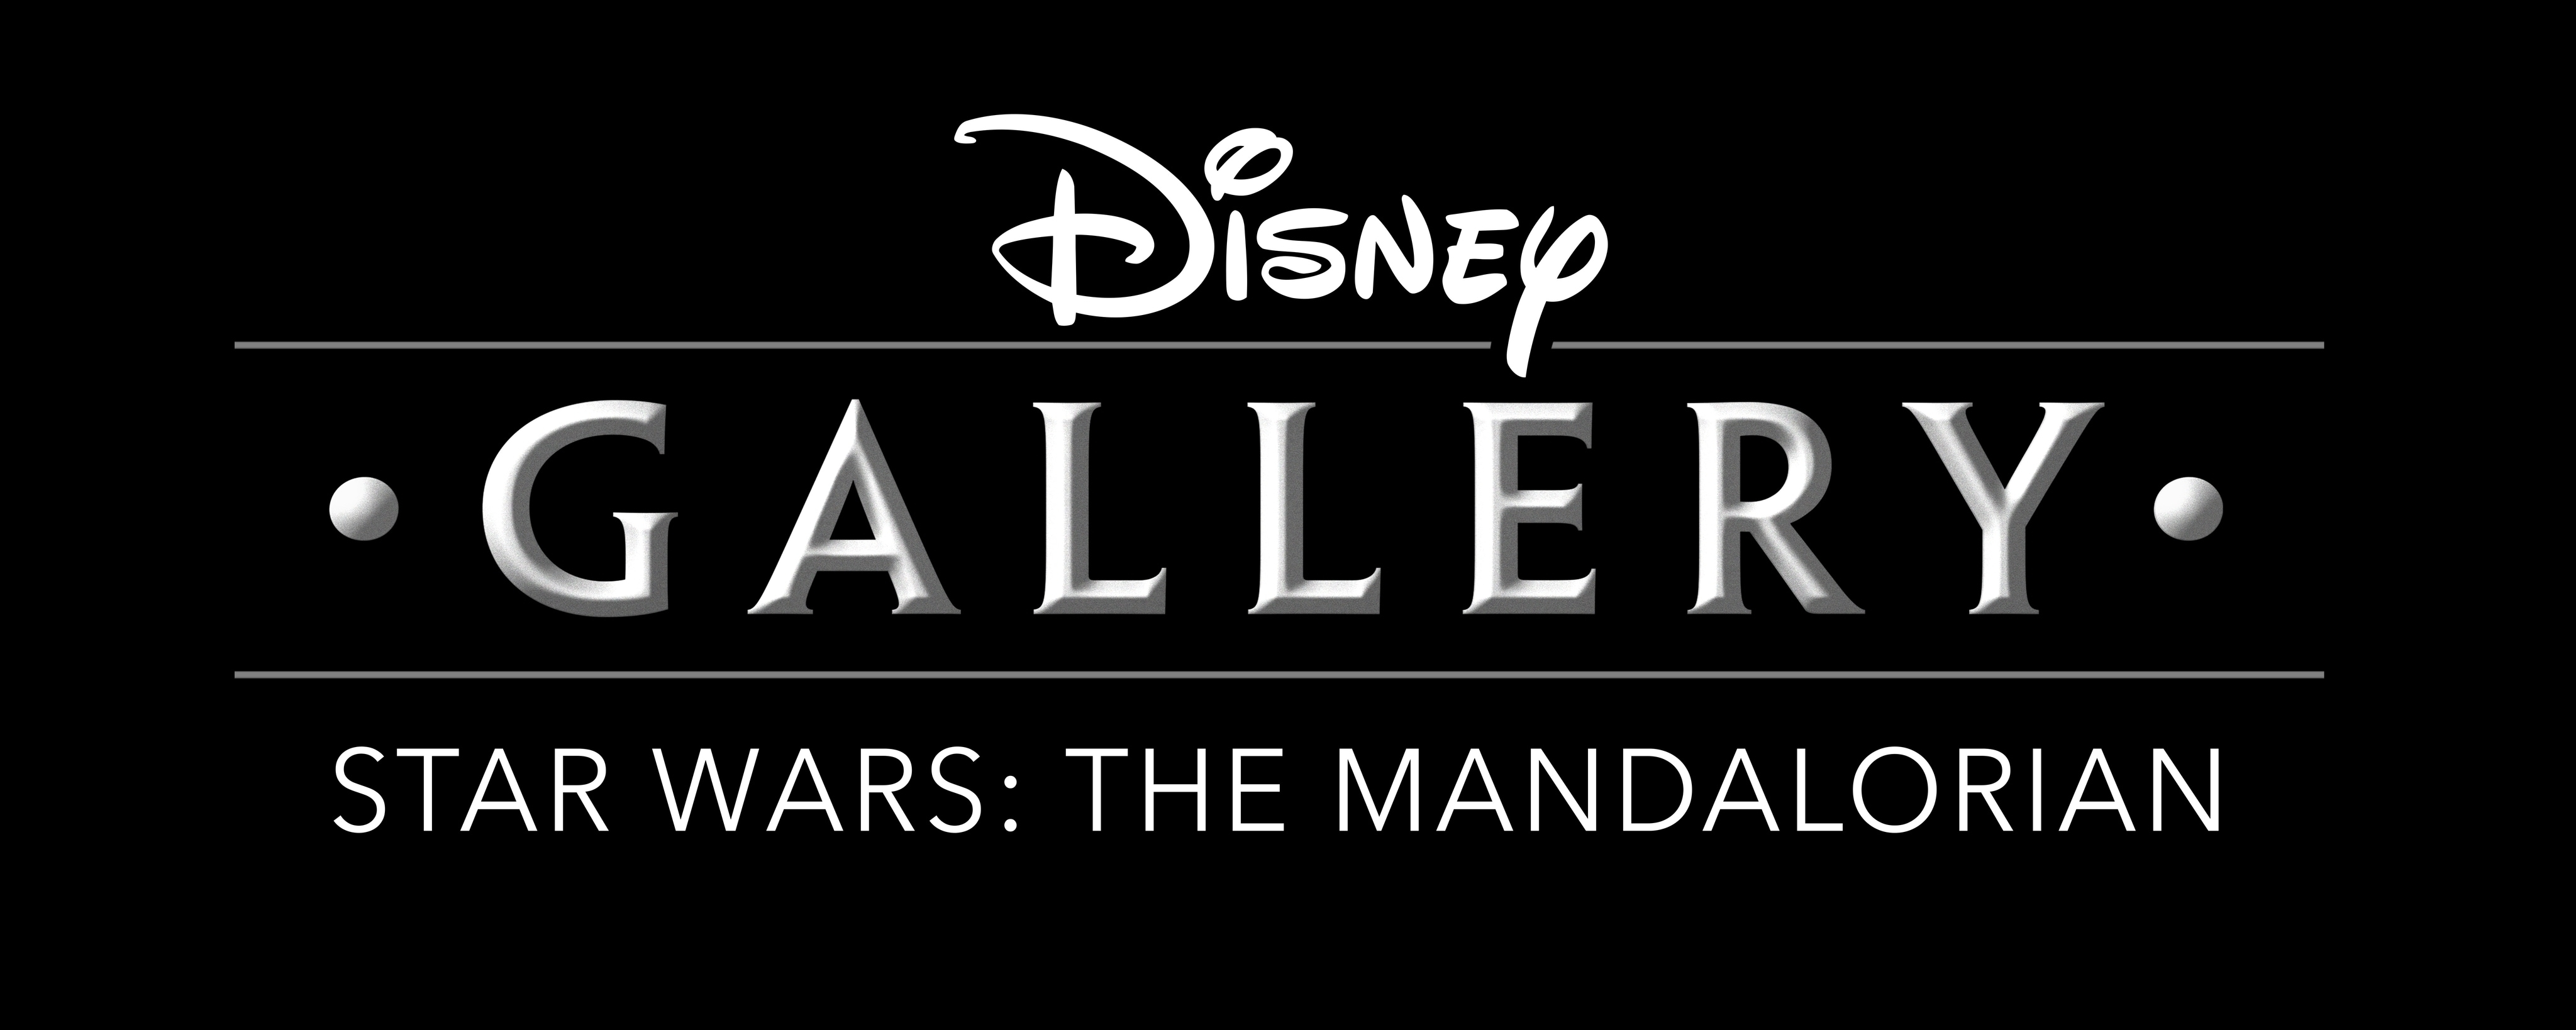 """Disney Gallery: Star Wars: The Mandalorian"""